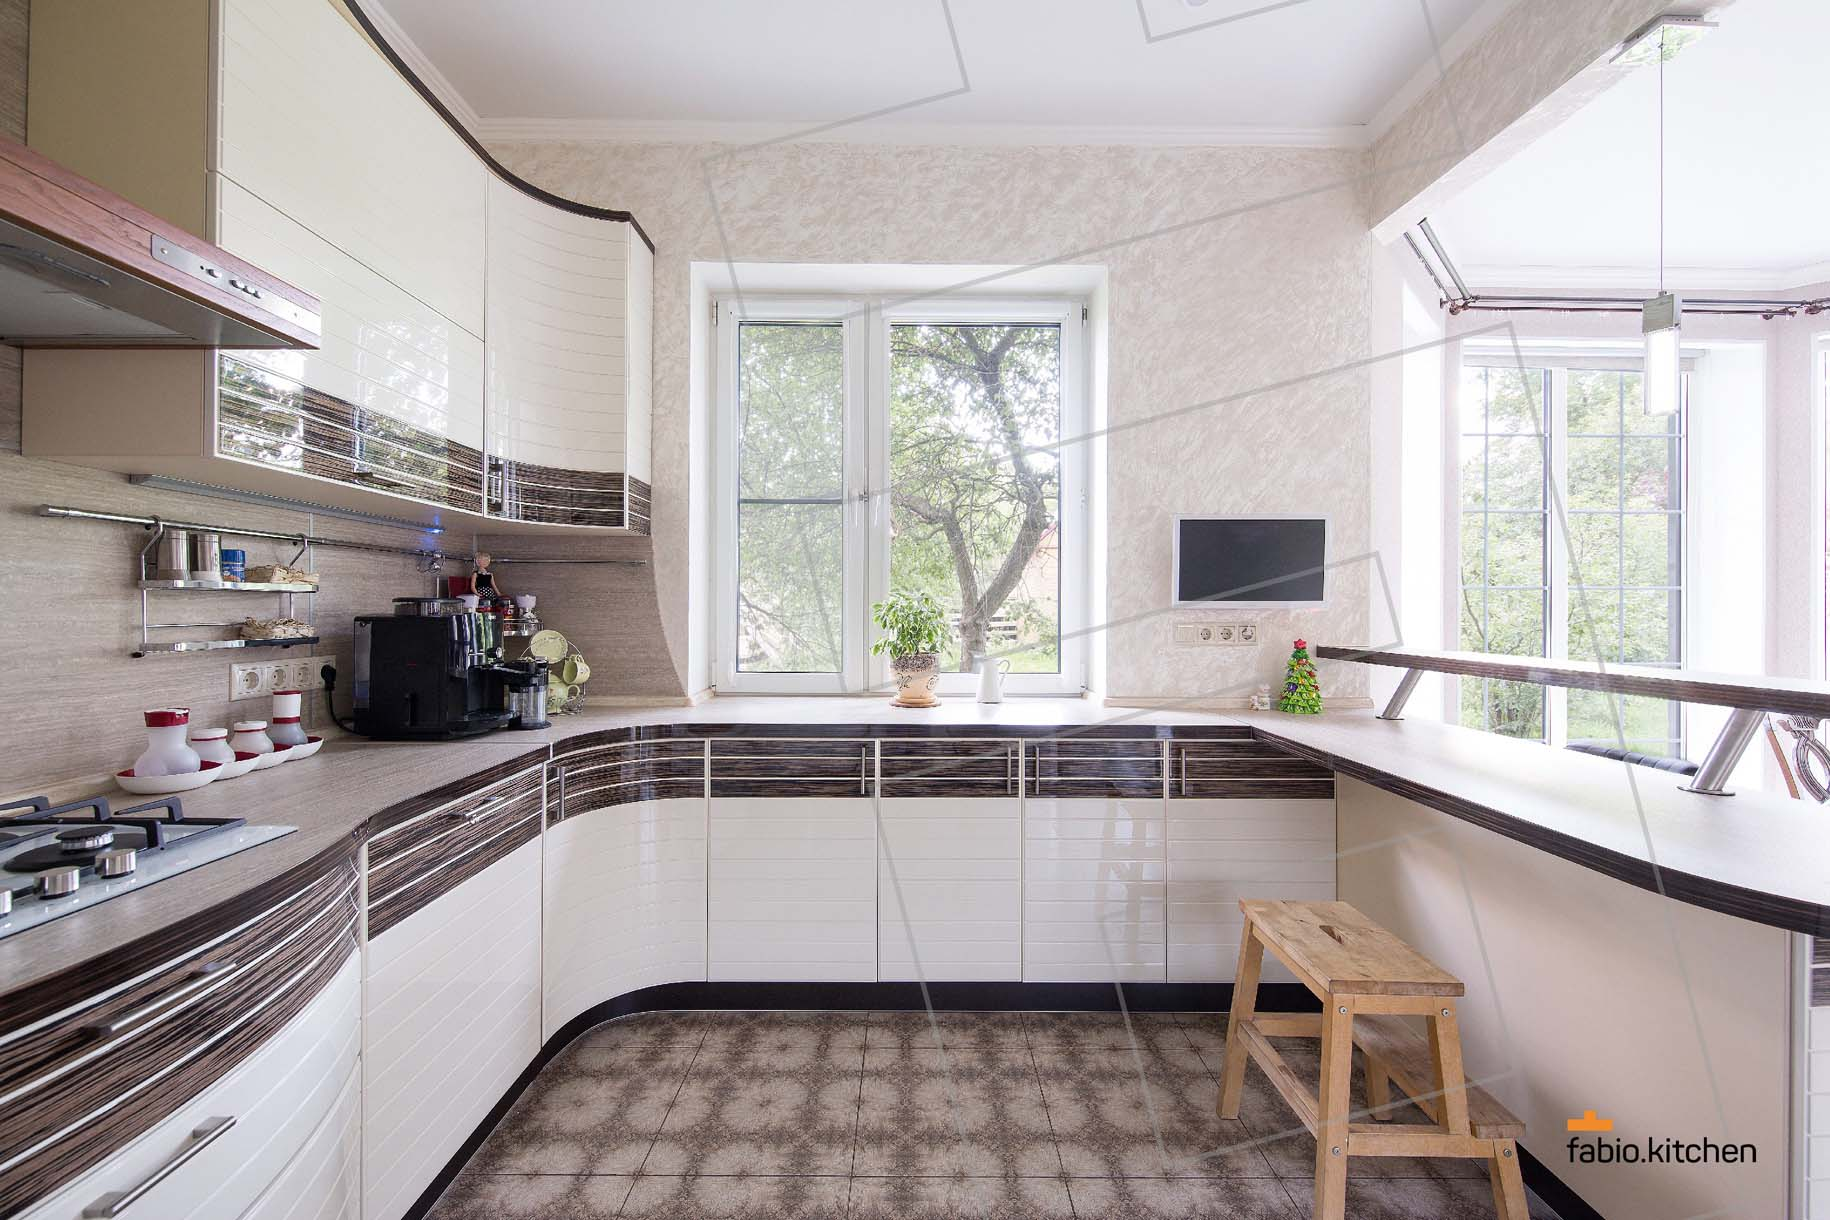 Fabio.Kitchen - Проект Кухни №62 Фото 4